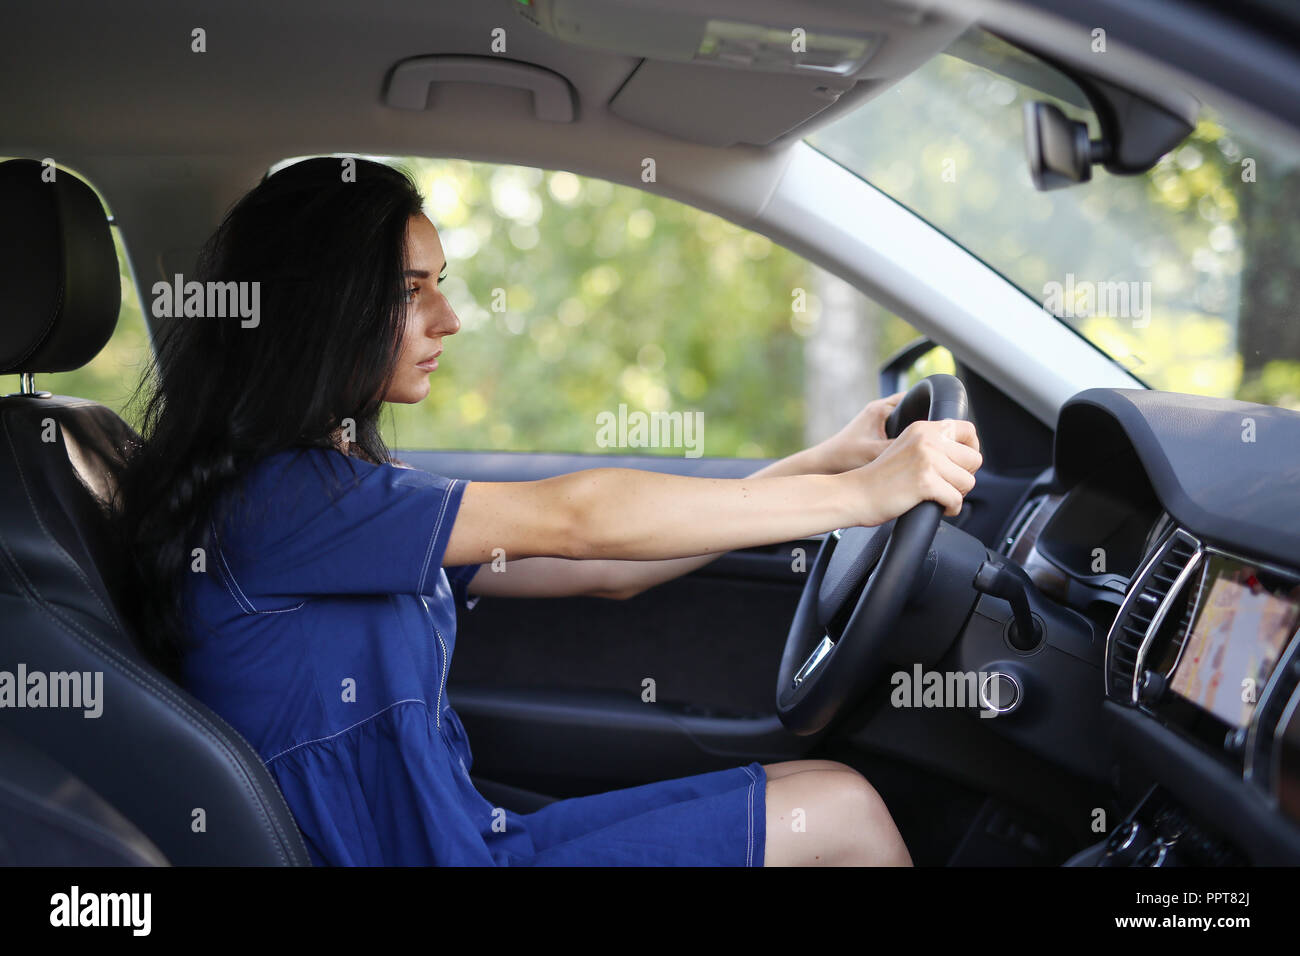 Woman On The Front Seat By The Steering Wheel Stock Photo 220580042